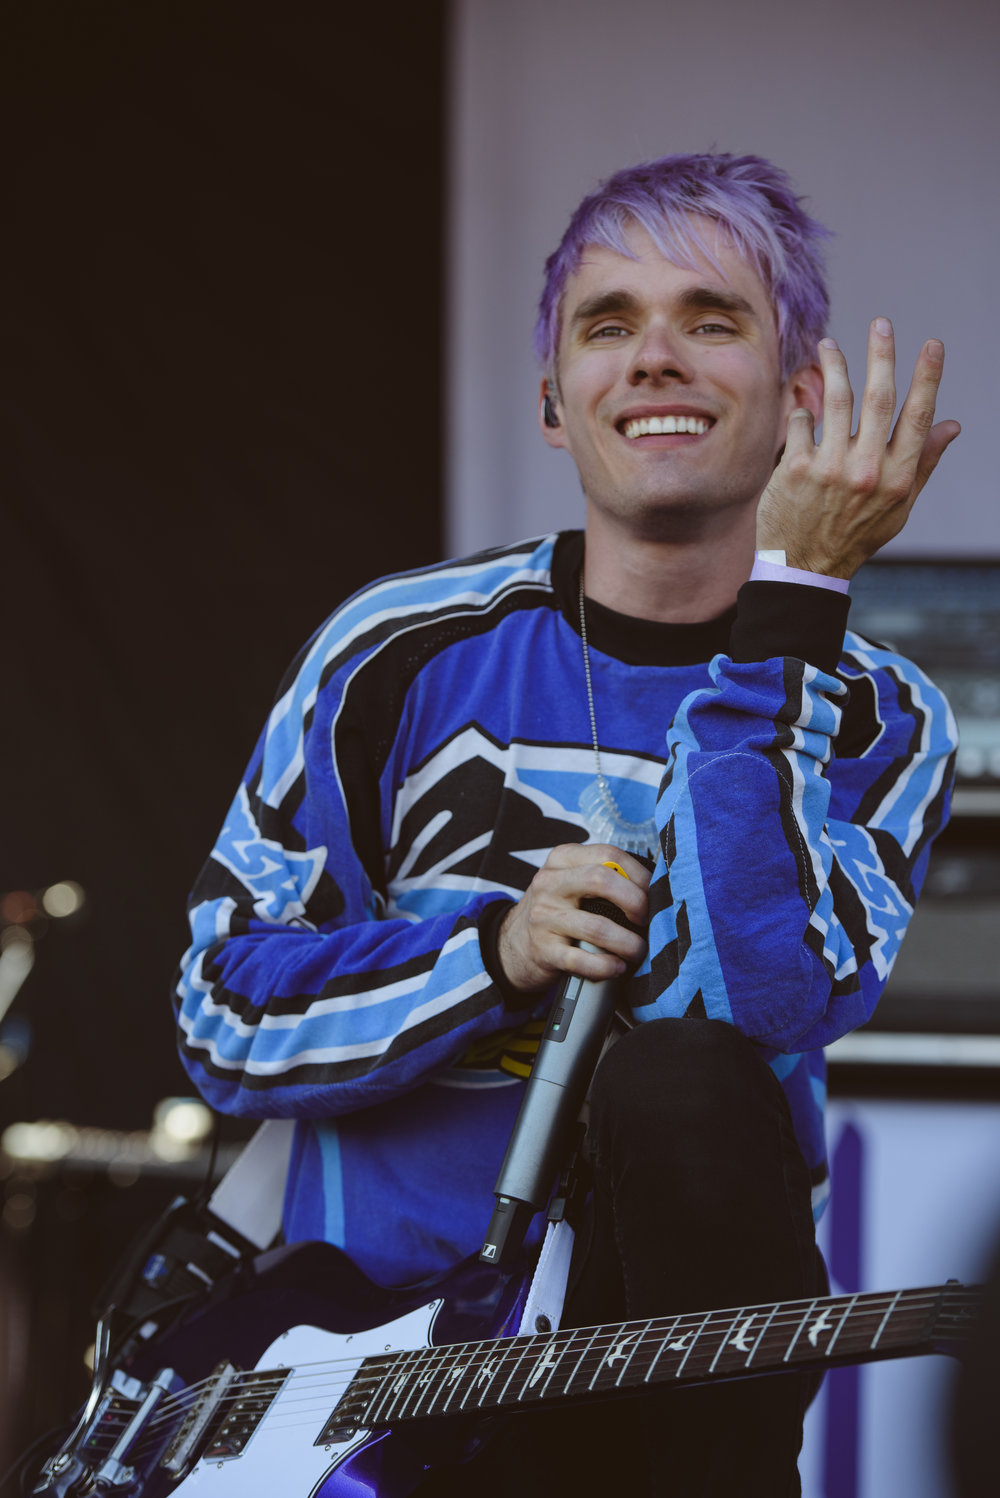 Waterparks-19 copy.jpg